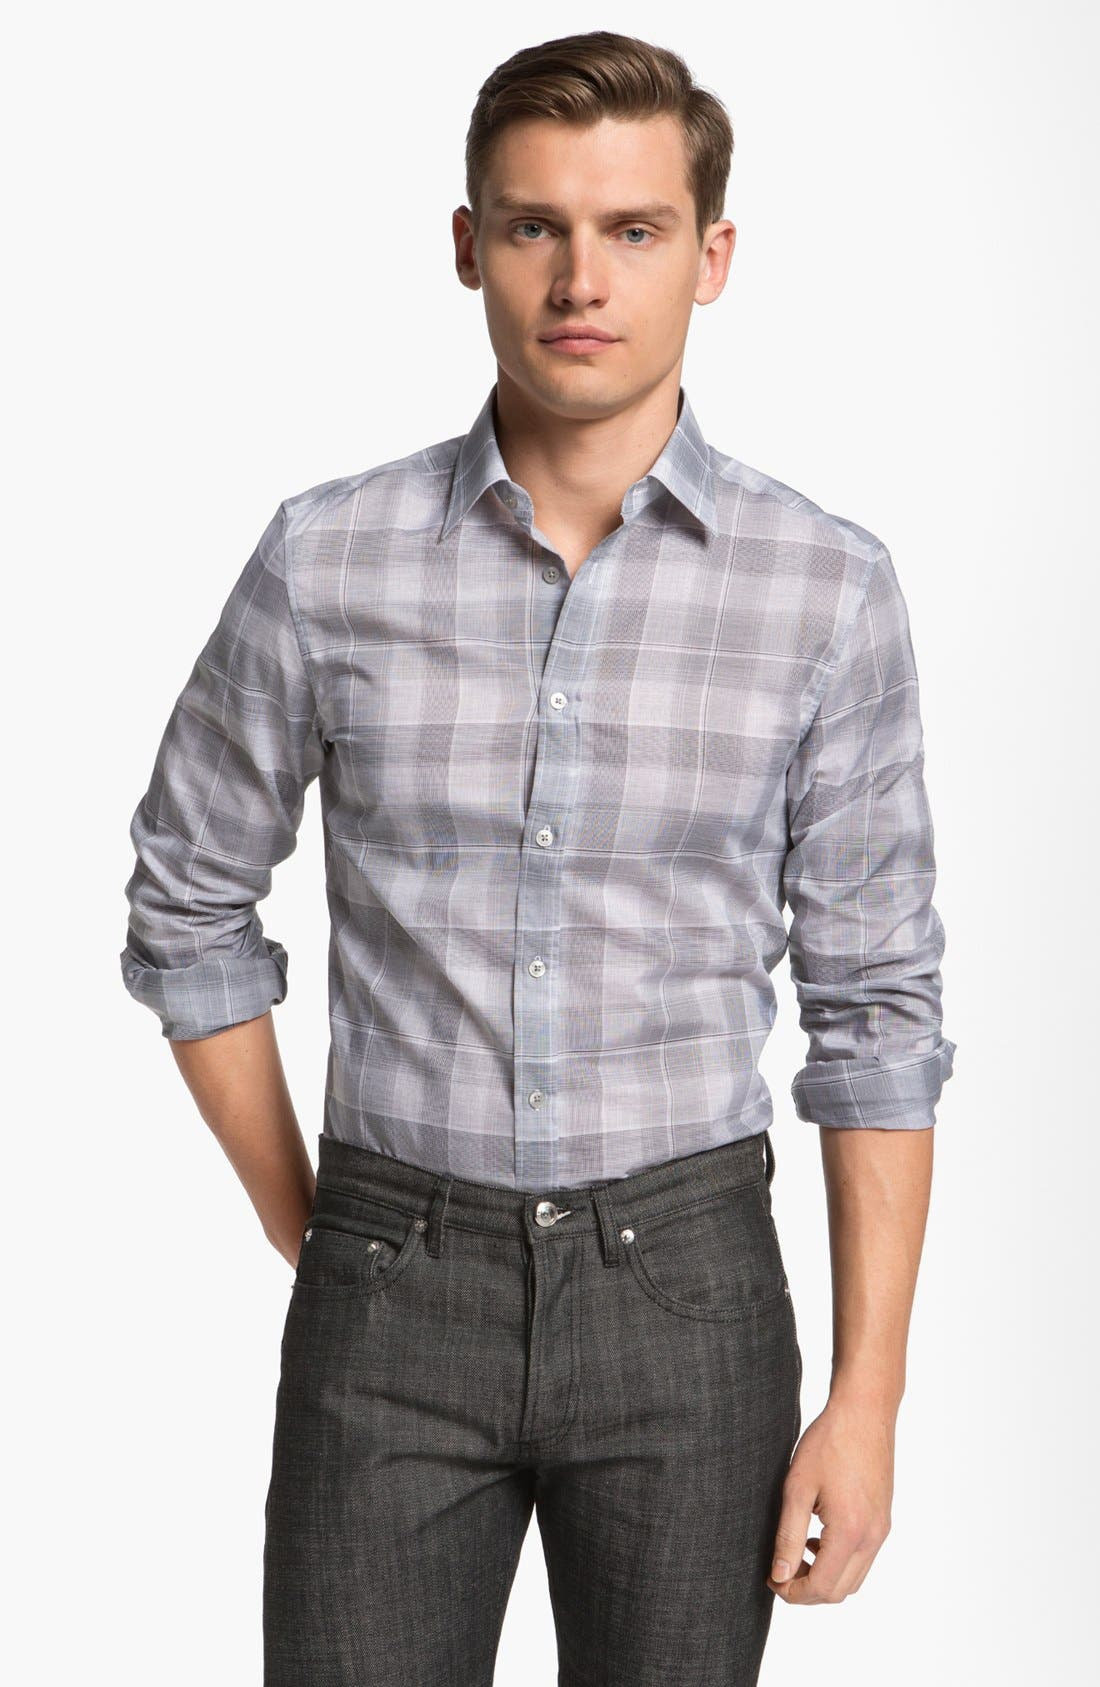 Alternate Image 1 Selected - Z Zegna 'Zephir' Check Cotton Sport Shirt